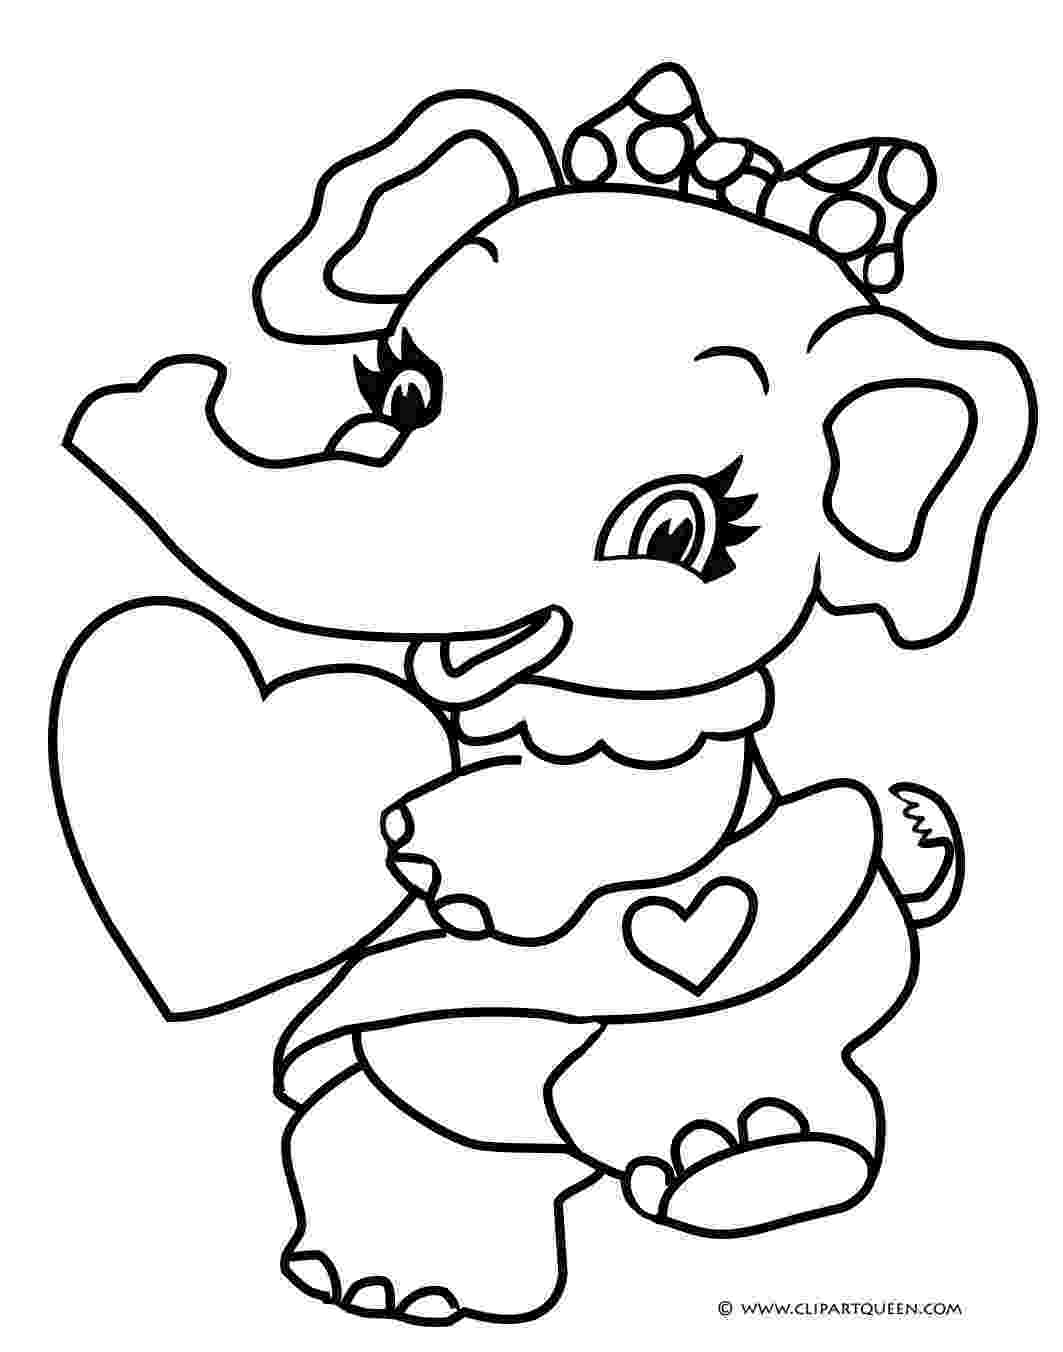 valentine hearts coloring pages valentine39s heart coloring page crayolacom valentine coloring hearts pages